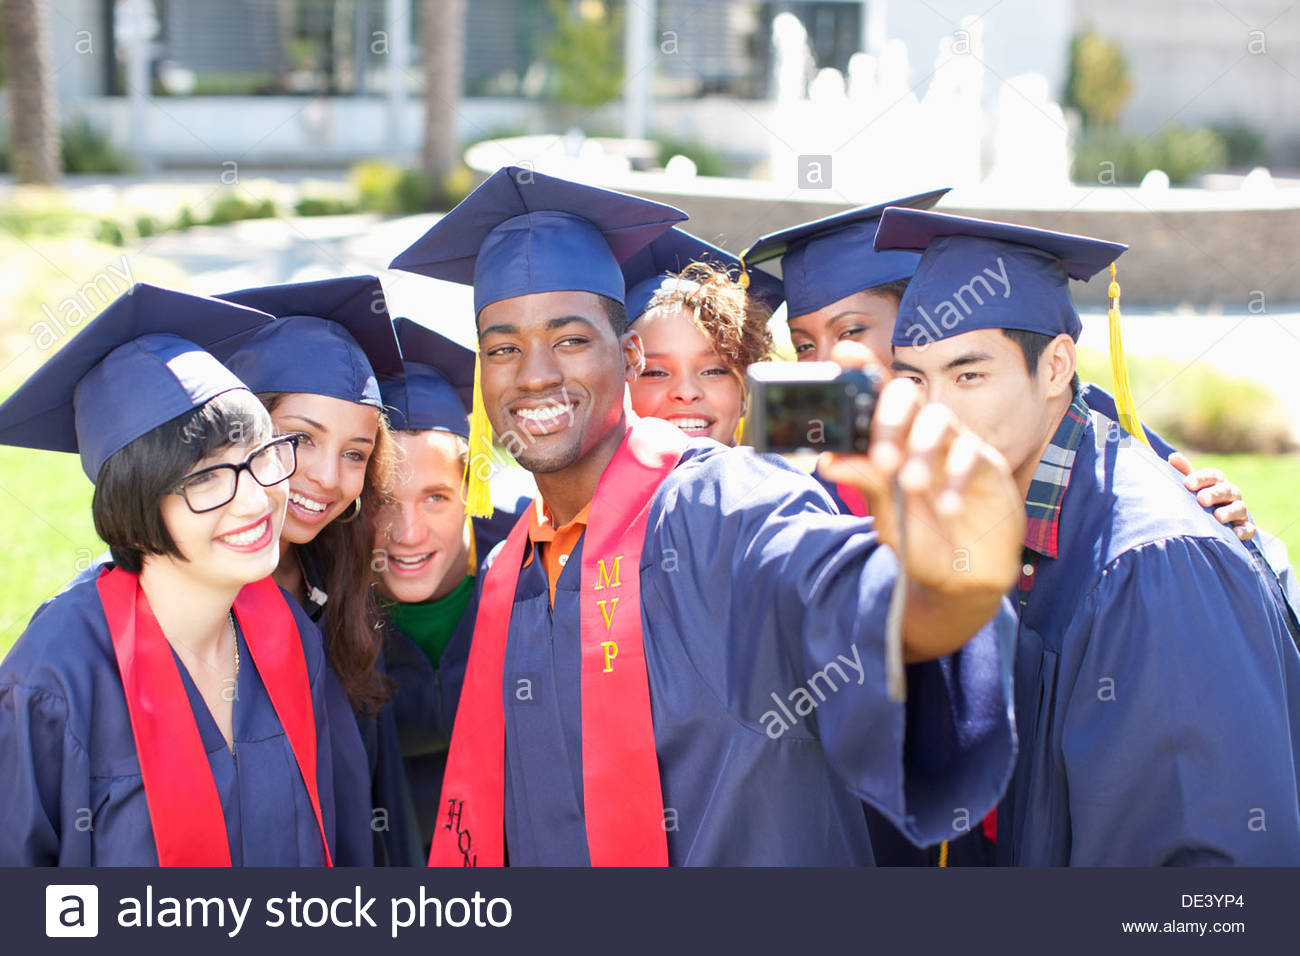 Graduates taking picture of themselves - Stock Image